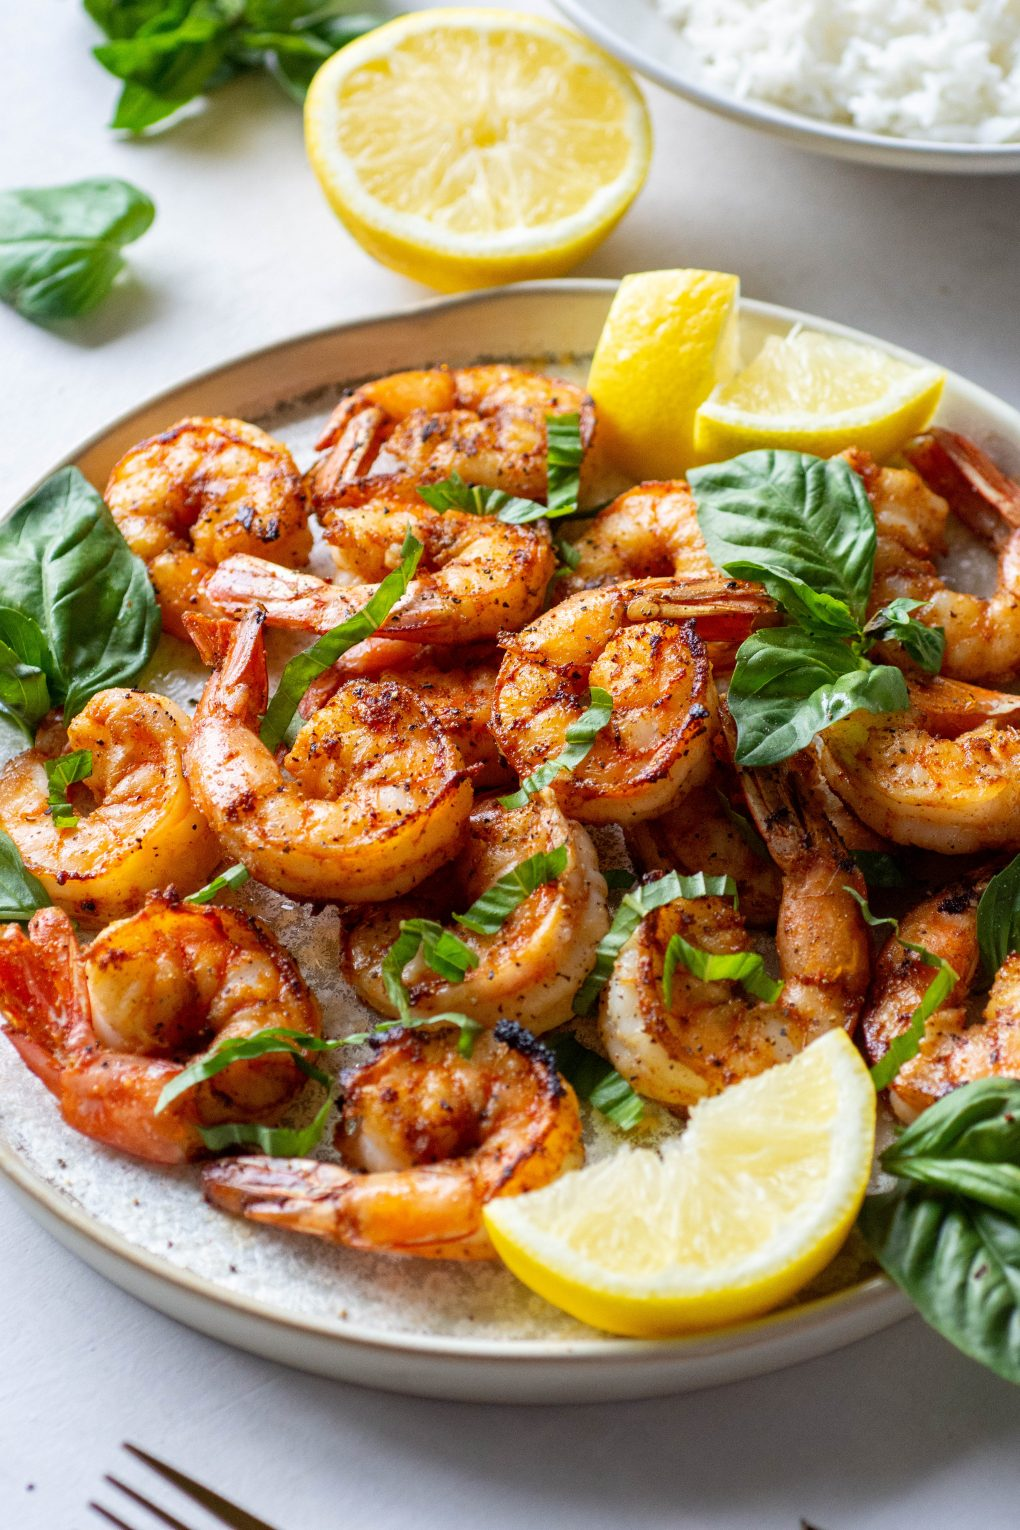 Close up side angle of a plate of seared shrimp topped with fresh basil and lemon wedges next to a bowl of white rice on a light background